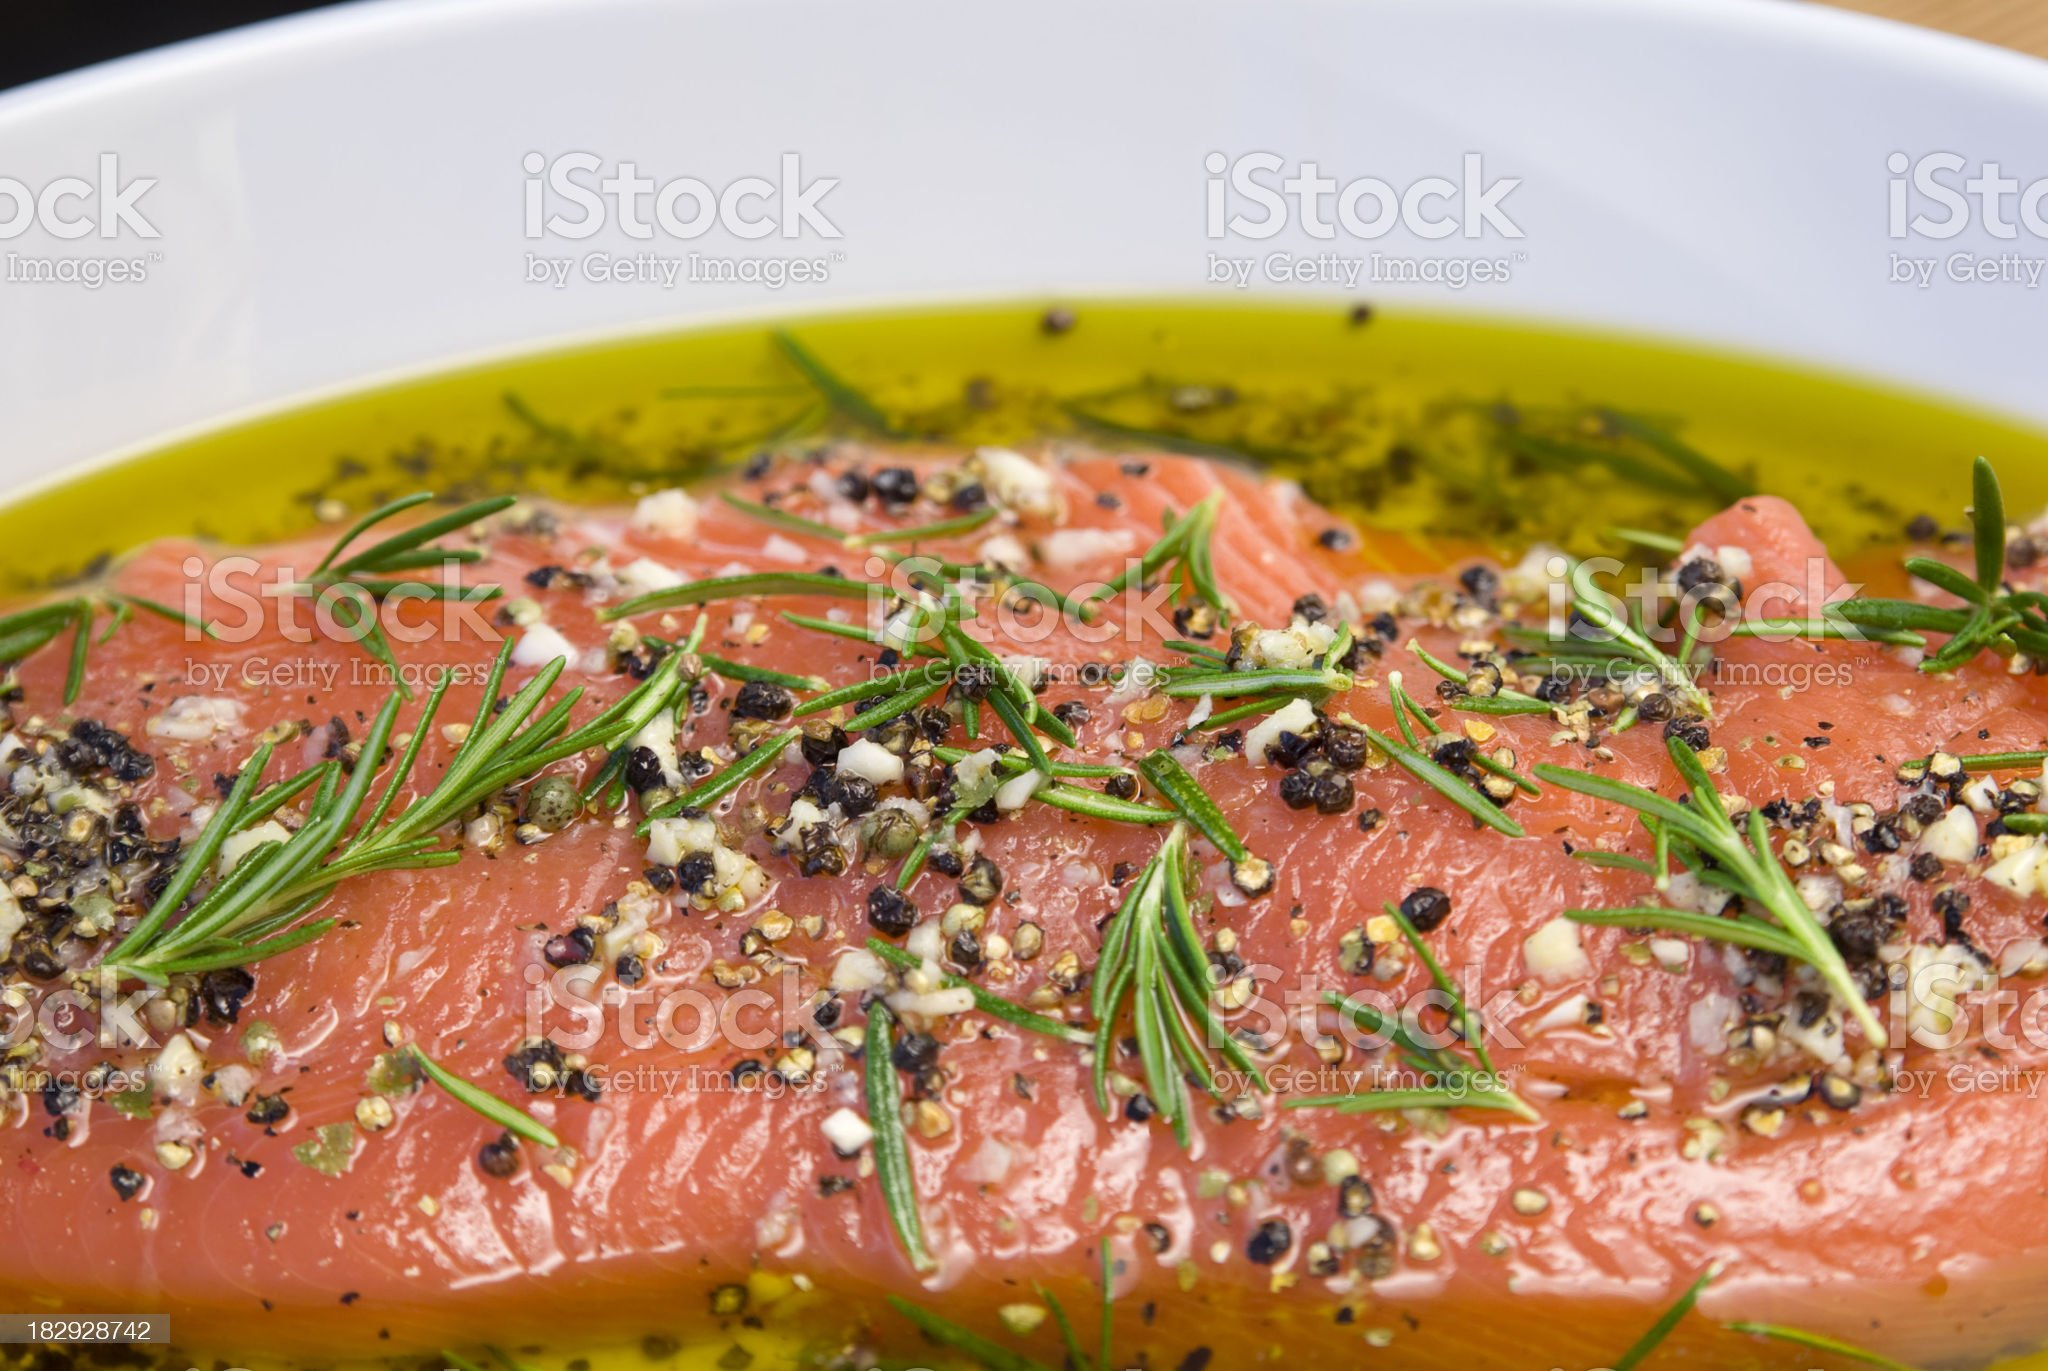 Marinated Salmon Fish Seafood, Healthy Cooking, Rosemary & Olive Oil Marinade royalty-free stock photo